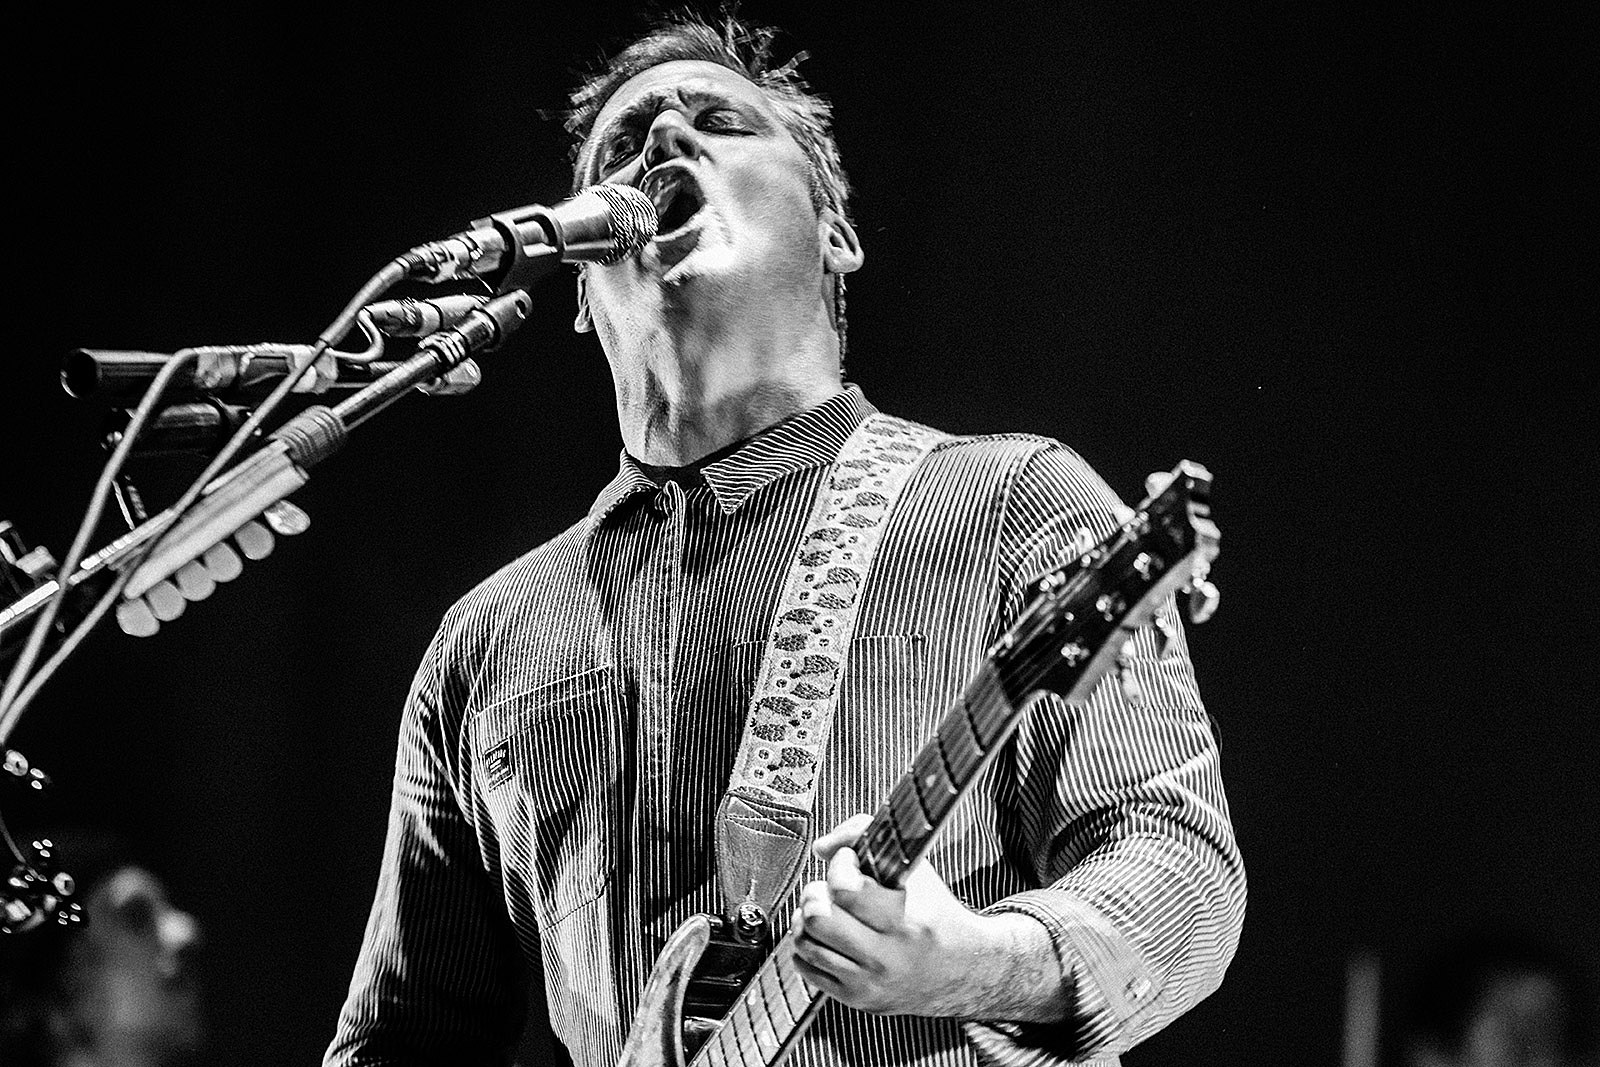 Modest Mouse at Barclays Center